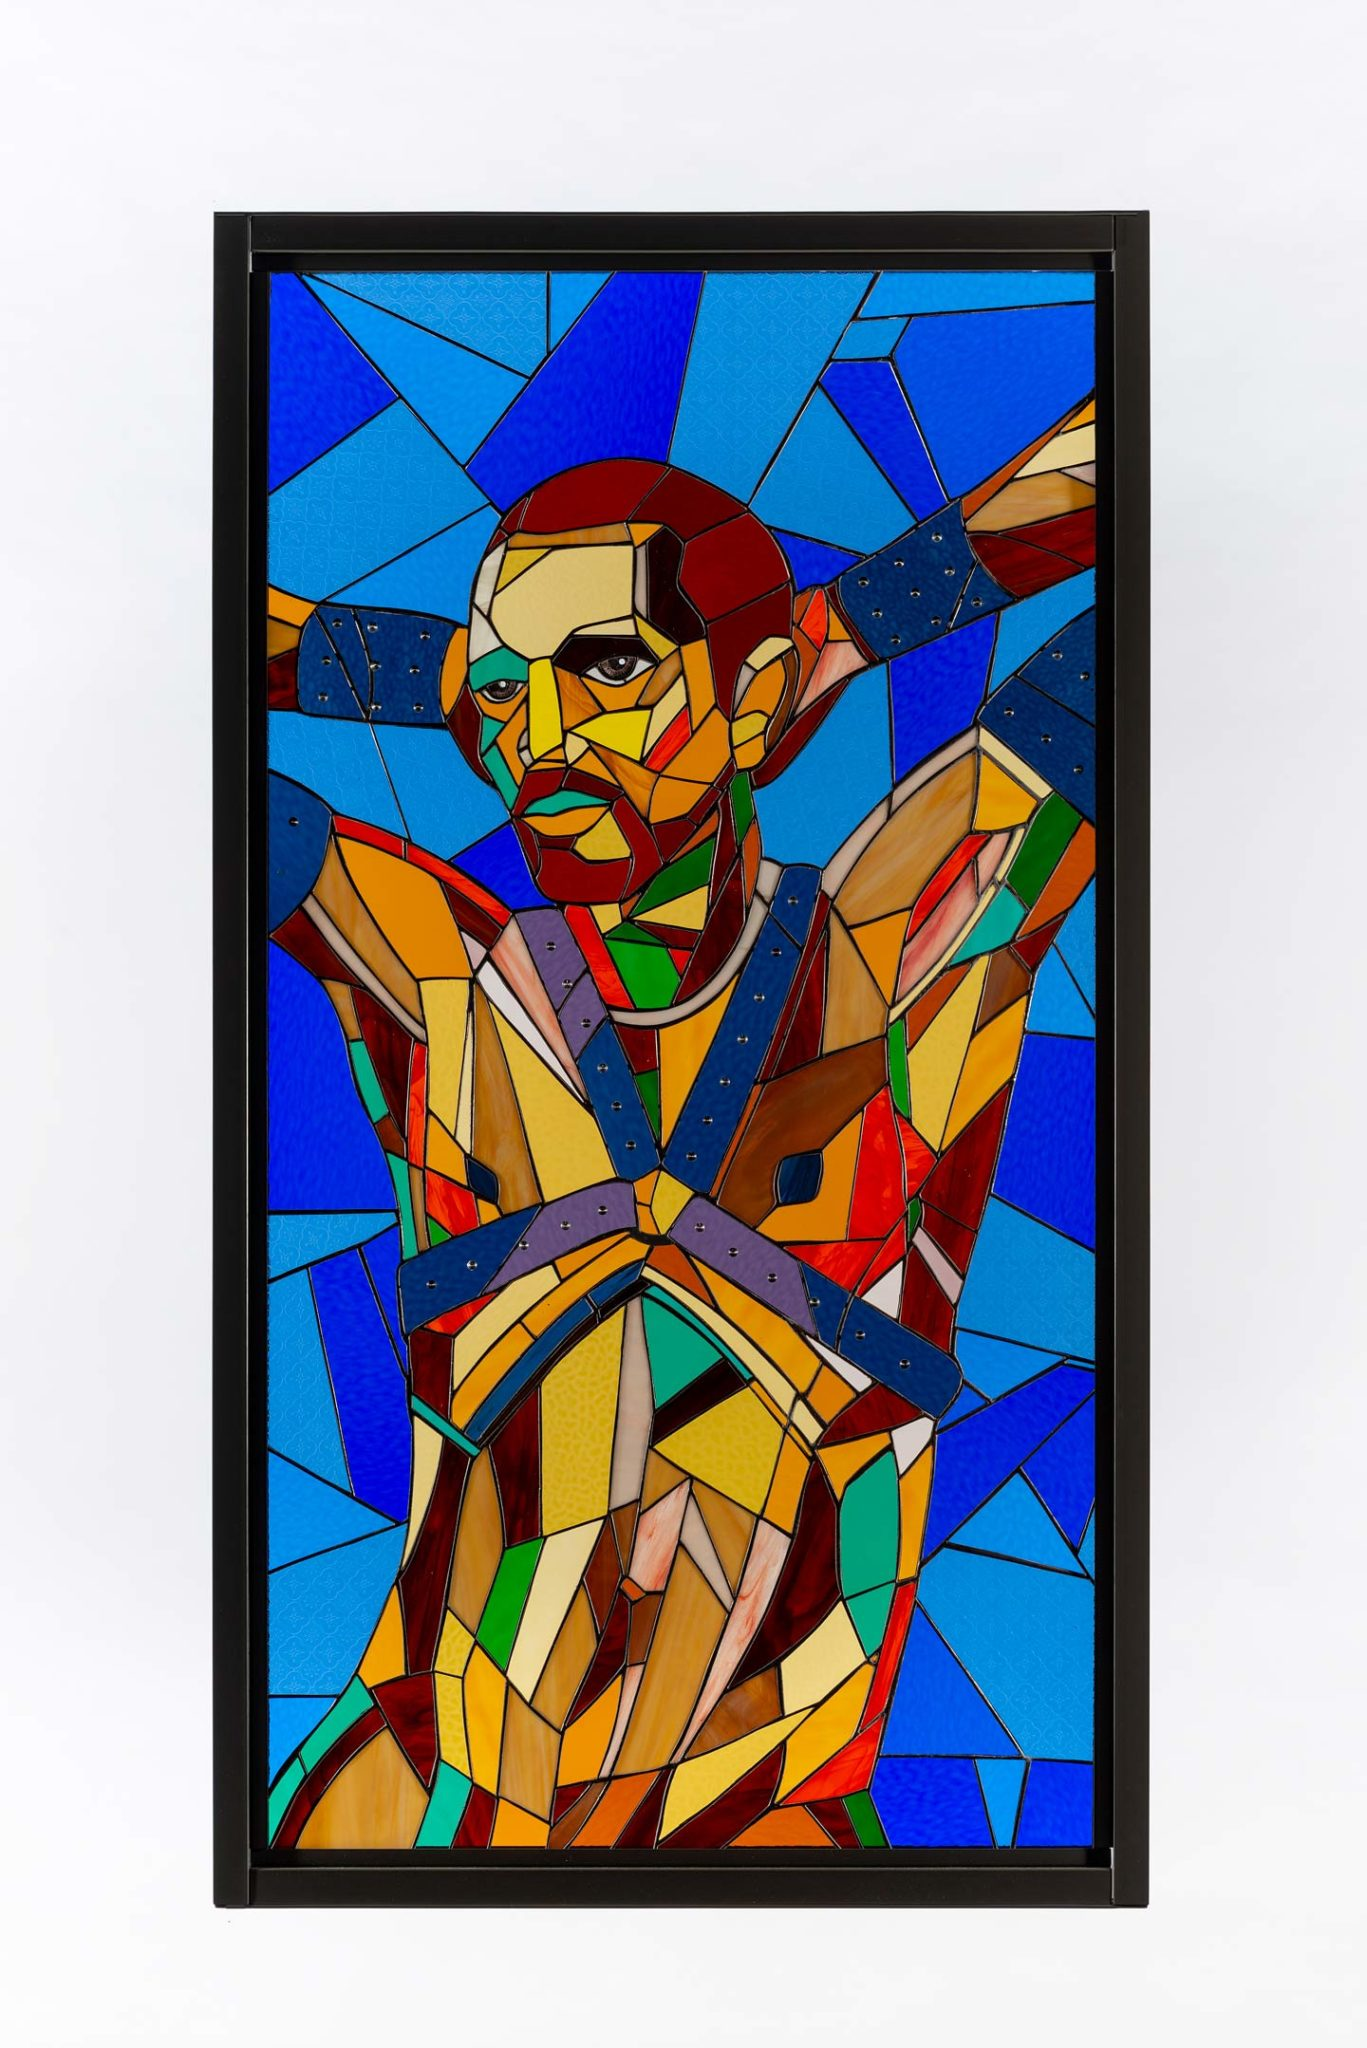 Athi-Patra Ruga, 'Swazi Youth After', 2020, Stained glass, lead, and powder-coated steel via whaiftheworld.com